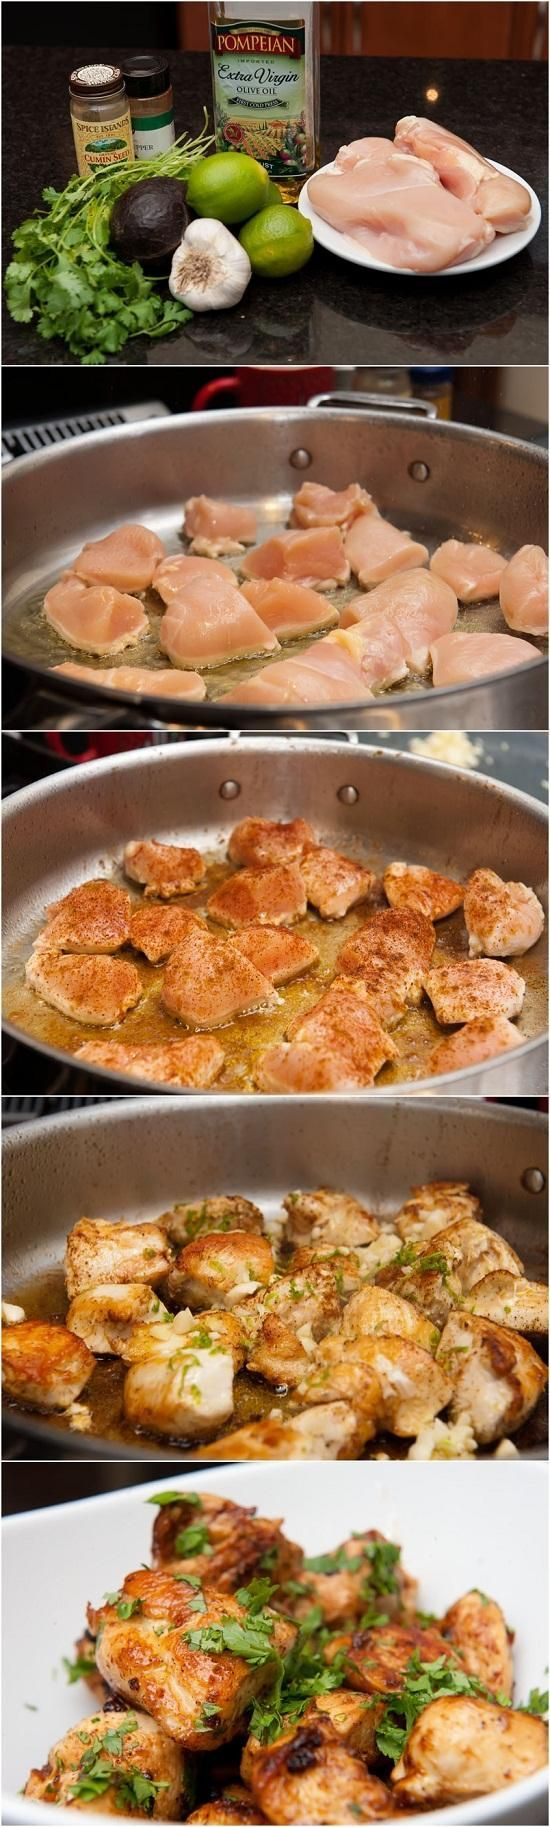 Quick Lime Cilantro Chicken. Loved This. Only Used One Large Lime and Cooked With Cilantro and Added More At The End.